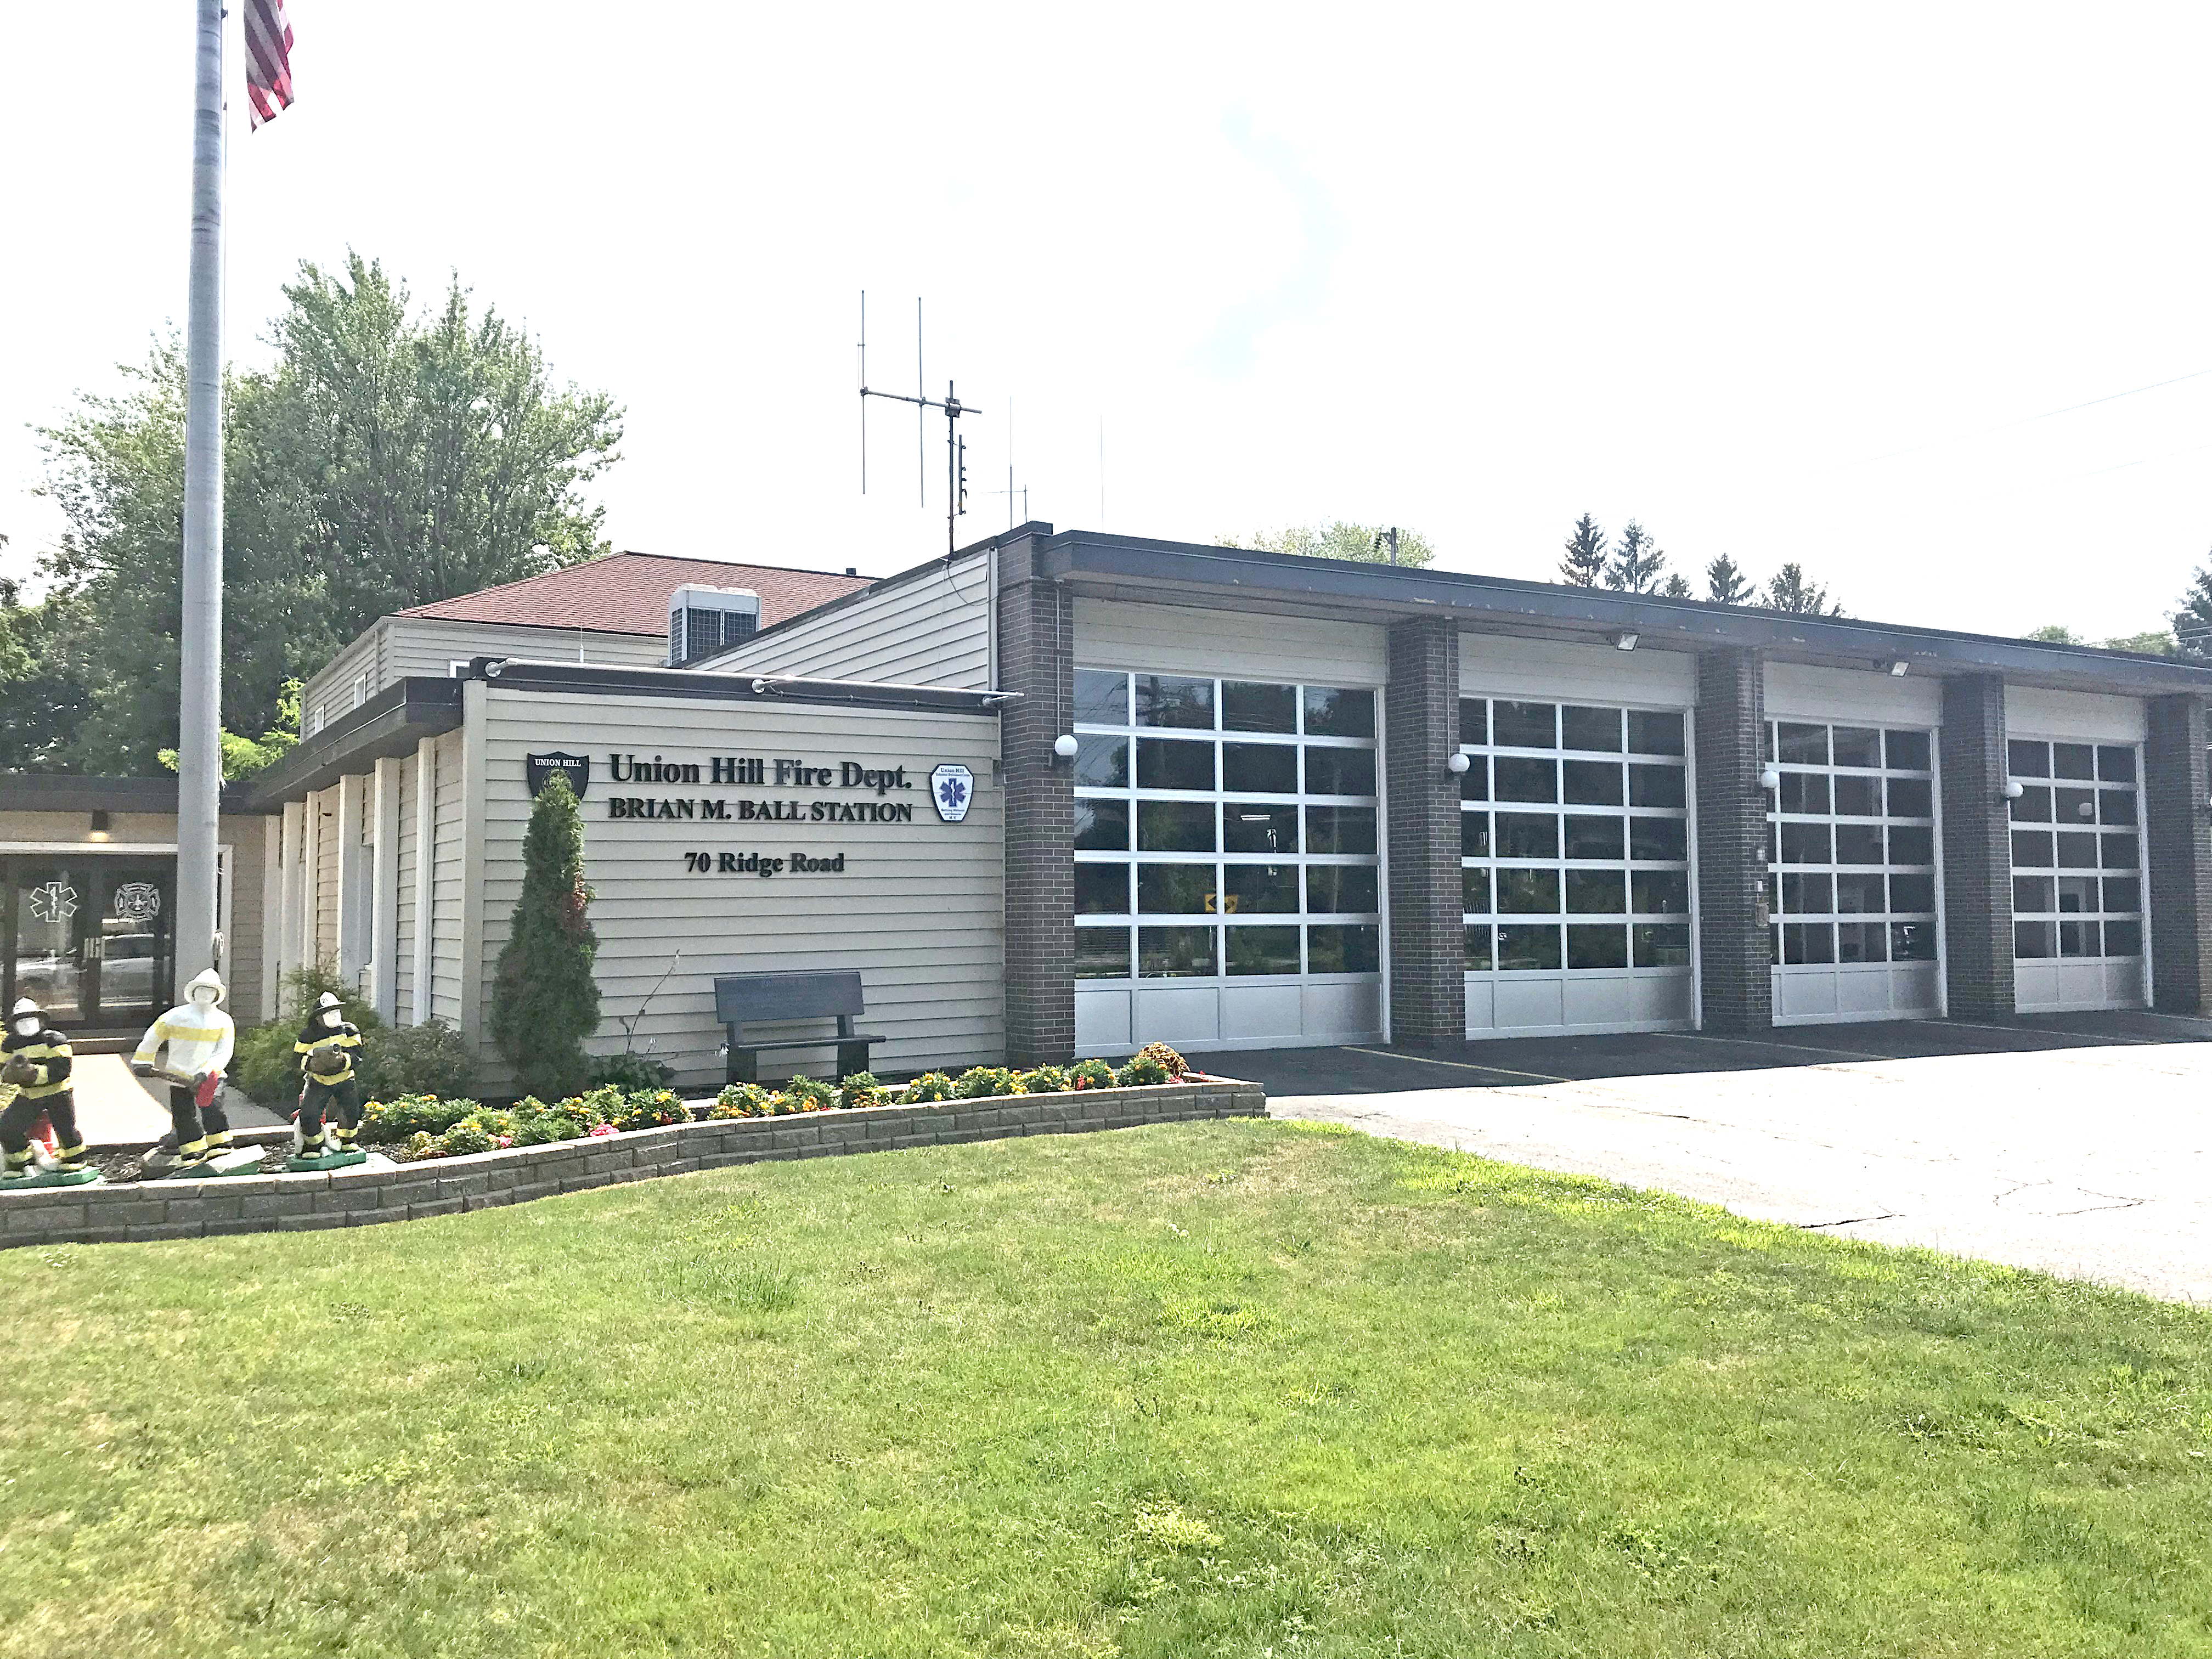 Union Hill Fire Department to cease operations in Wayne County; Ontario Fire District #1 to handle transition